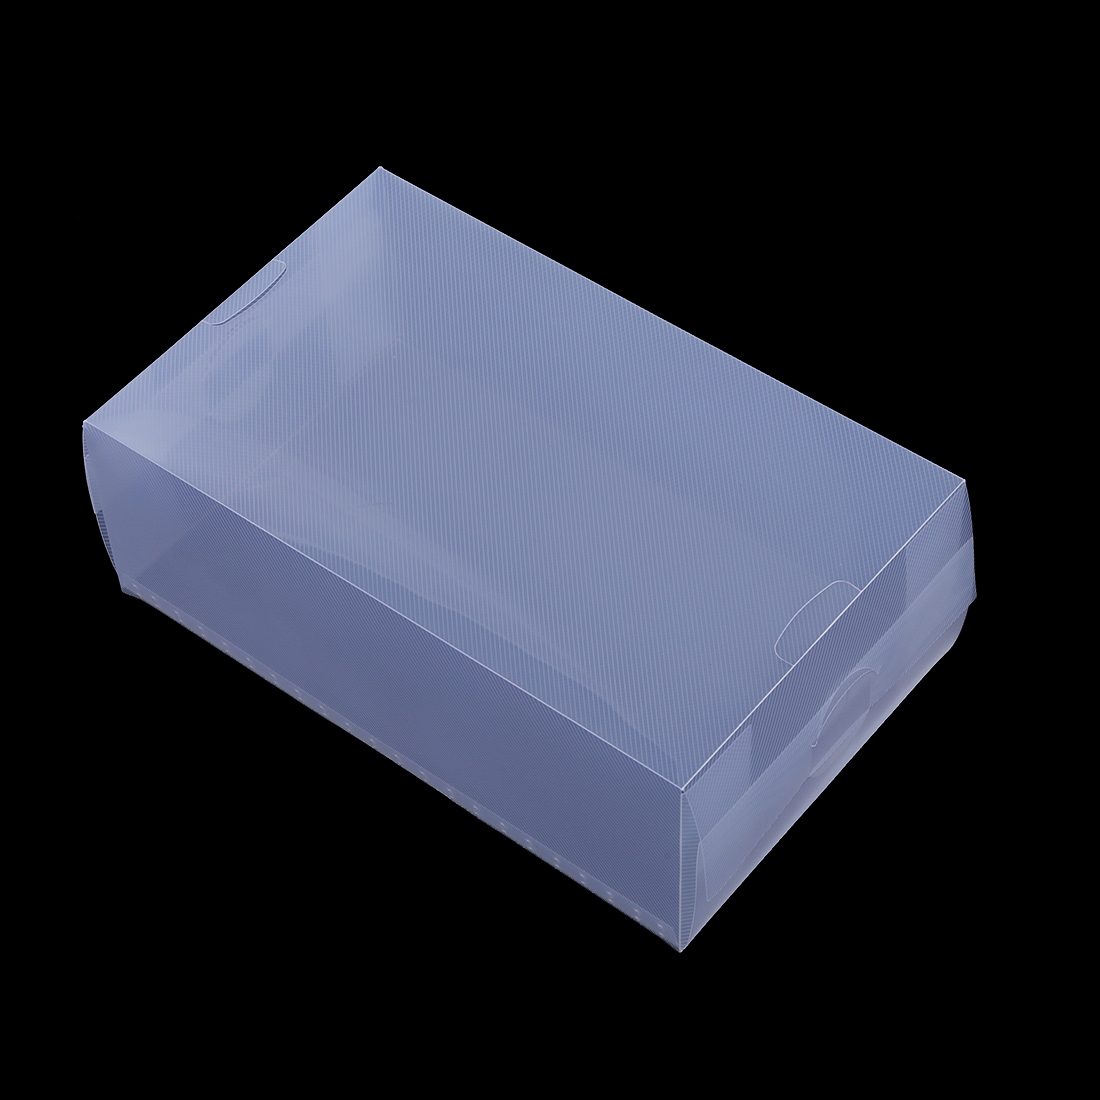 5 x clear plastic mens shoe storage boxes containers size 8 9 10 11 e8 ebay. Black Bedroom Furniture Sets. Home Design Ideas